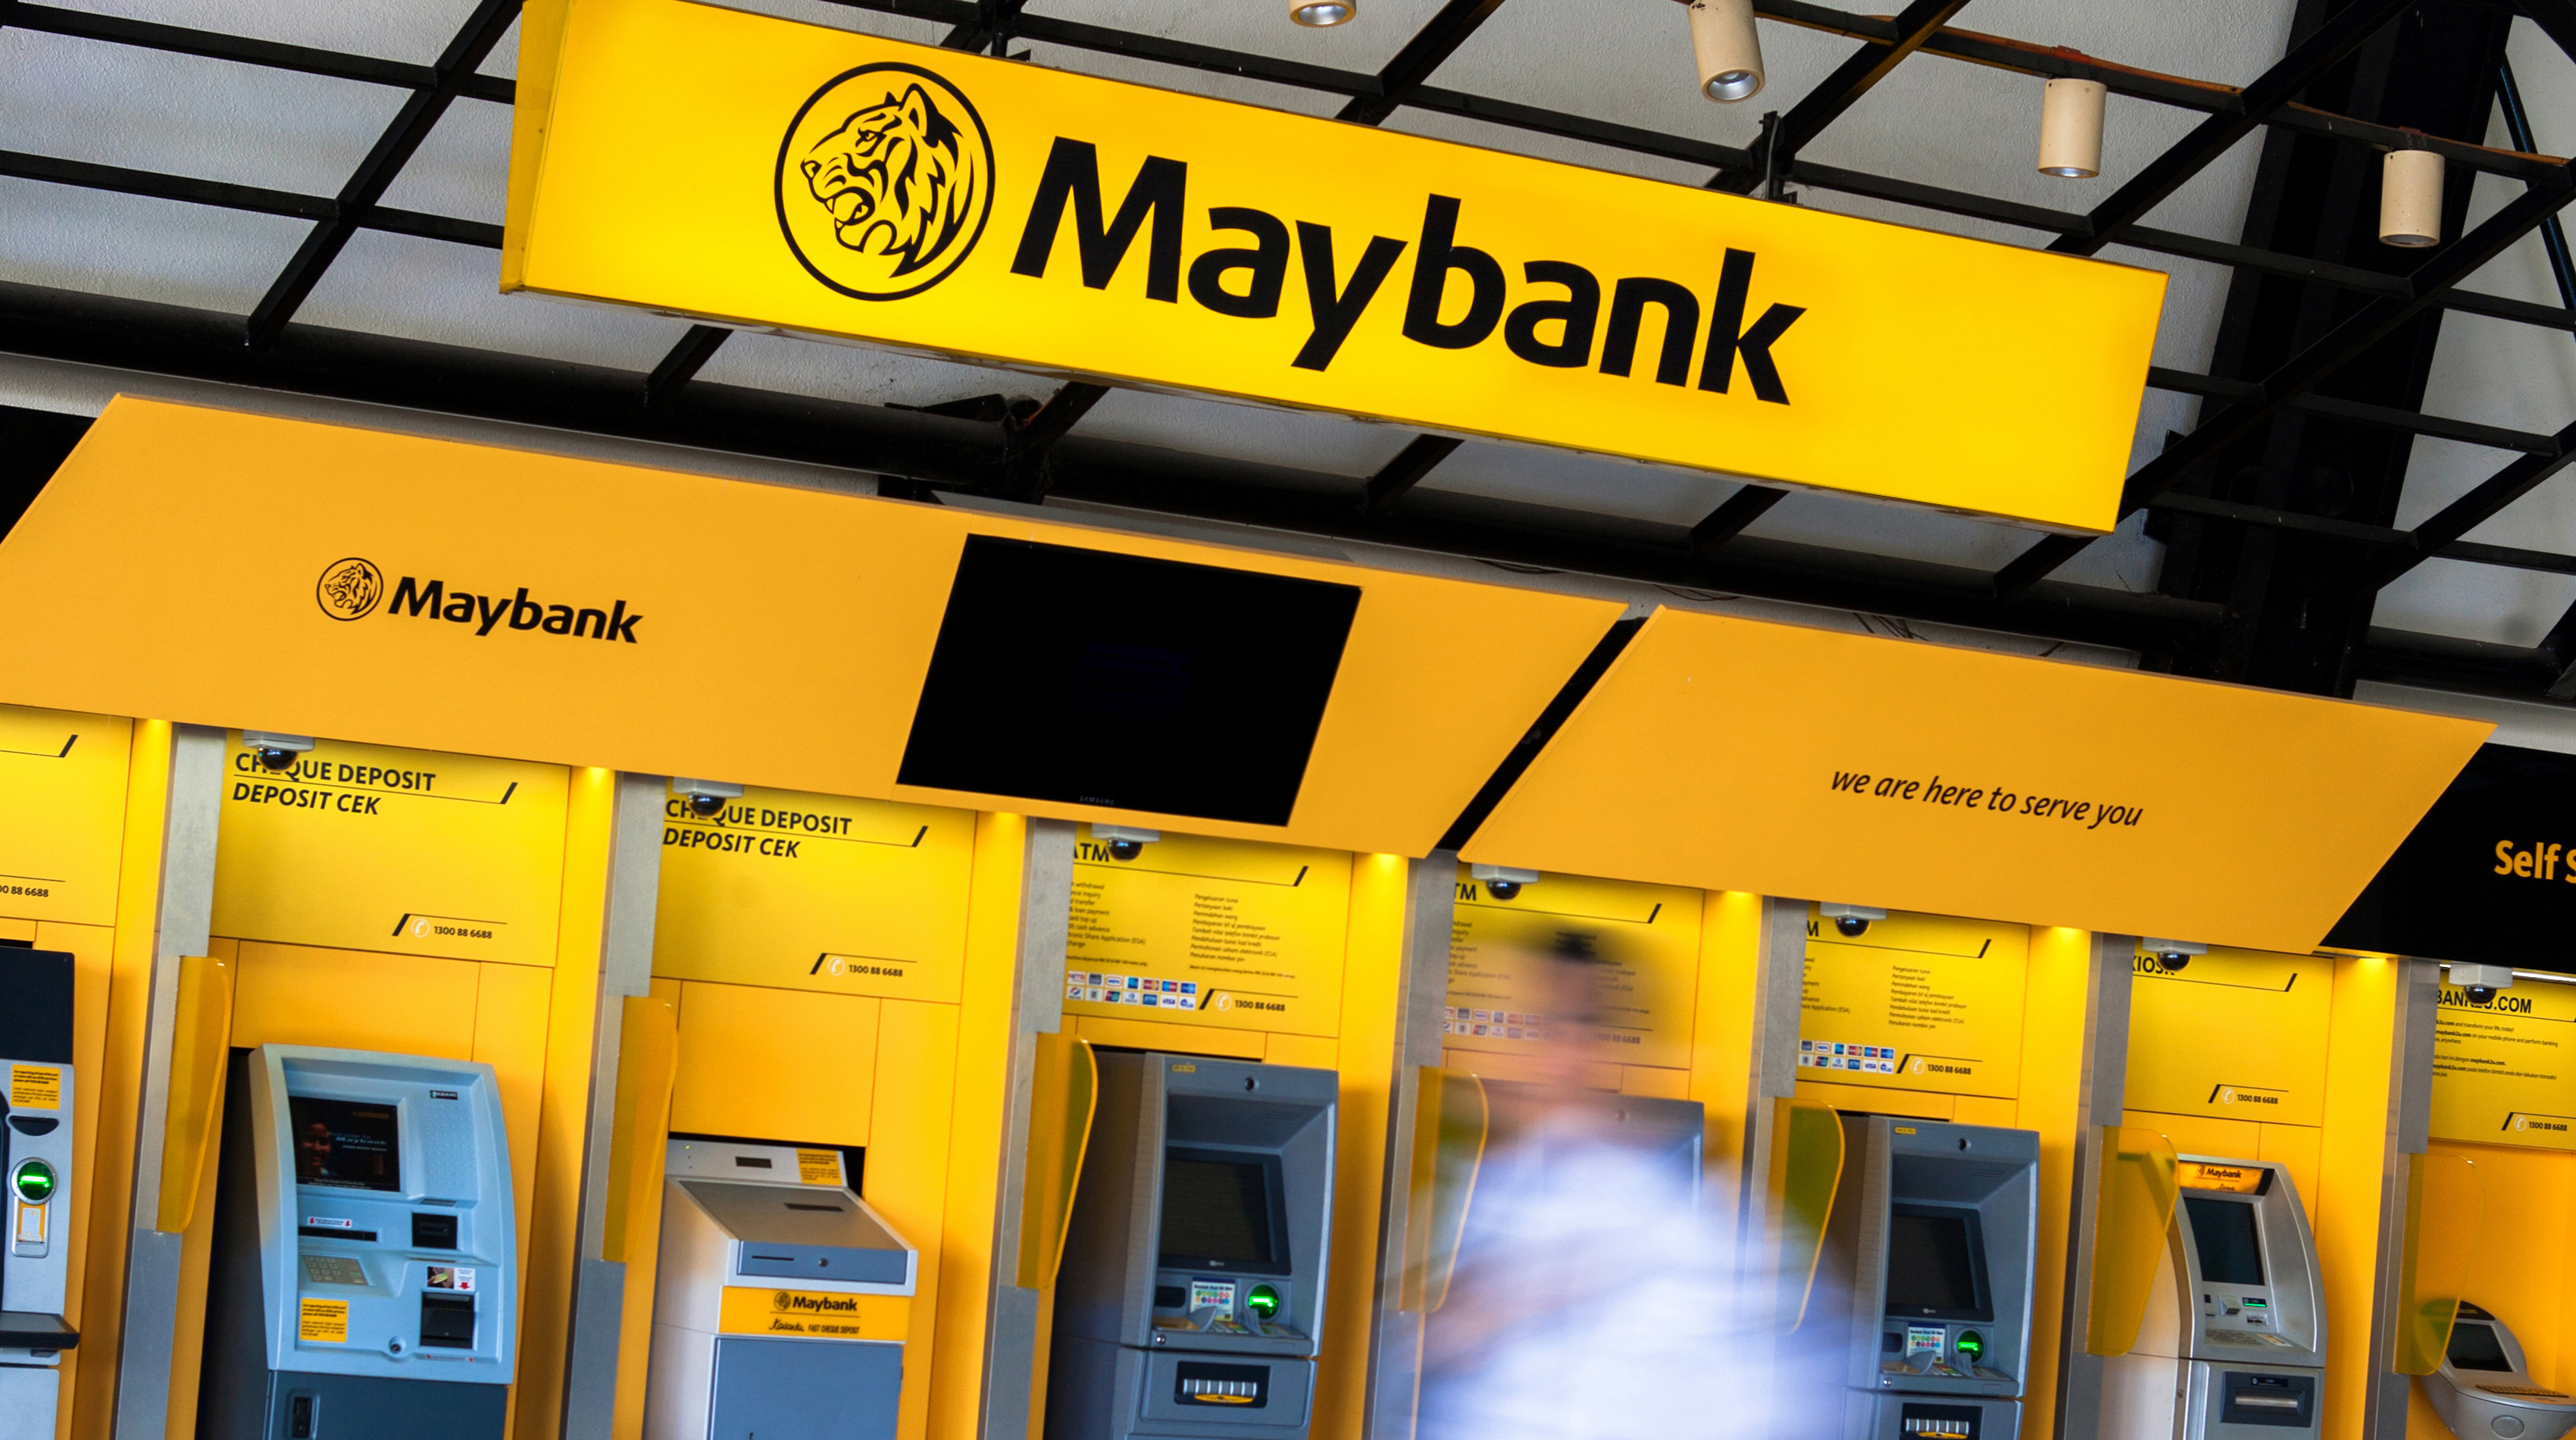 https://bonseydesign.com/wp-content/uploads/2020/05/Maybank-WEB-page-4.jpg